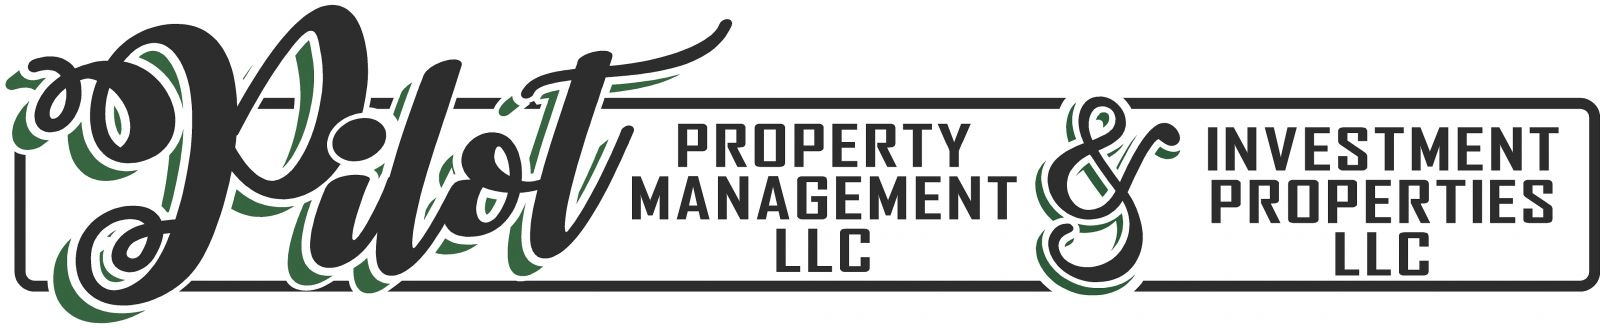 Pilot Property Management LLC